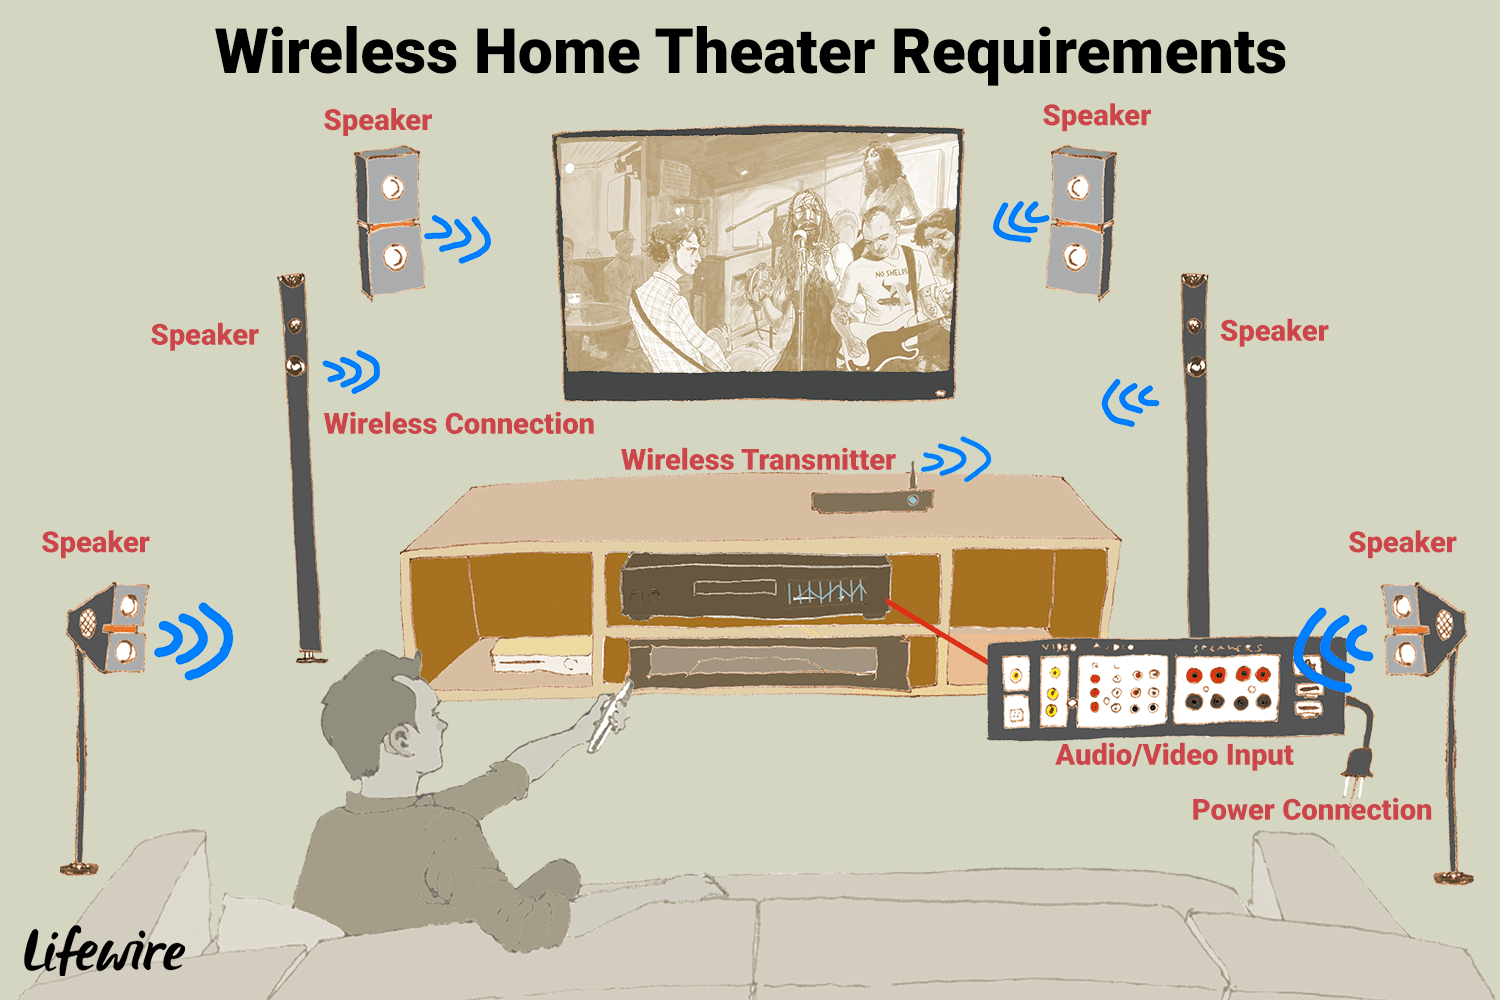 hight resolution of an illustration of the requirements for a wireless home theater system